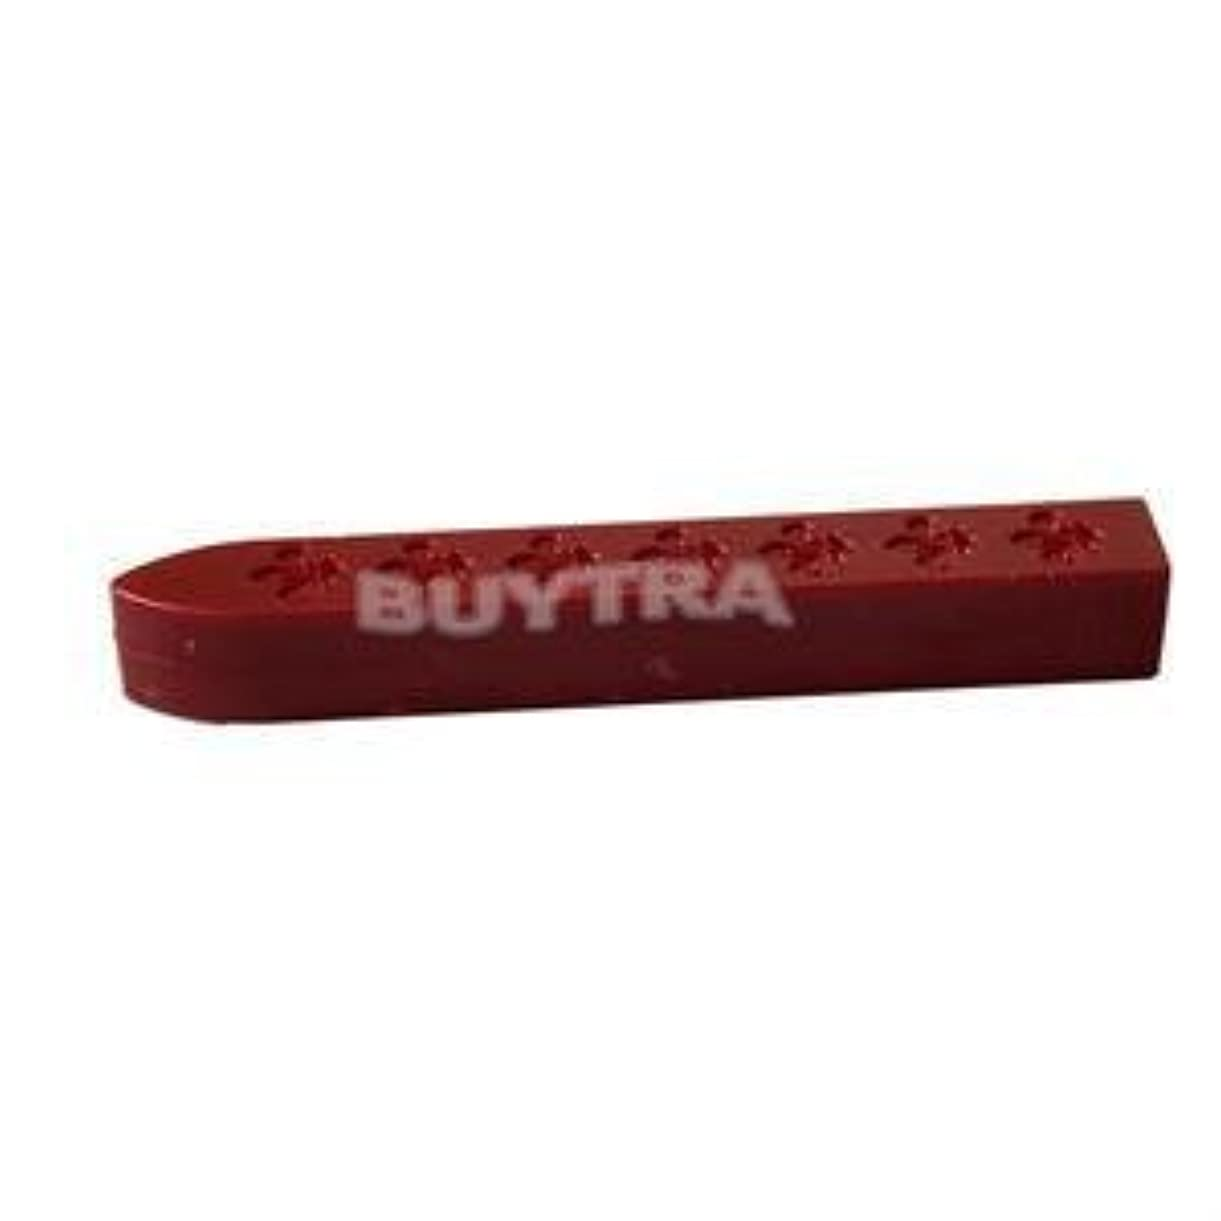 Stamps - Dinghan 1pc Wax Stick Stamp Wine Red - Custom Sticks Rose Candles Pink Paper Burner Glue Star 20mm Sealing Royal Seal Plum Melts Beads Gold Spoon Bags Green dyqrv2978